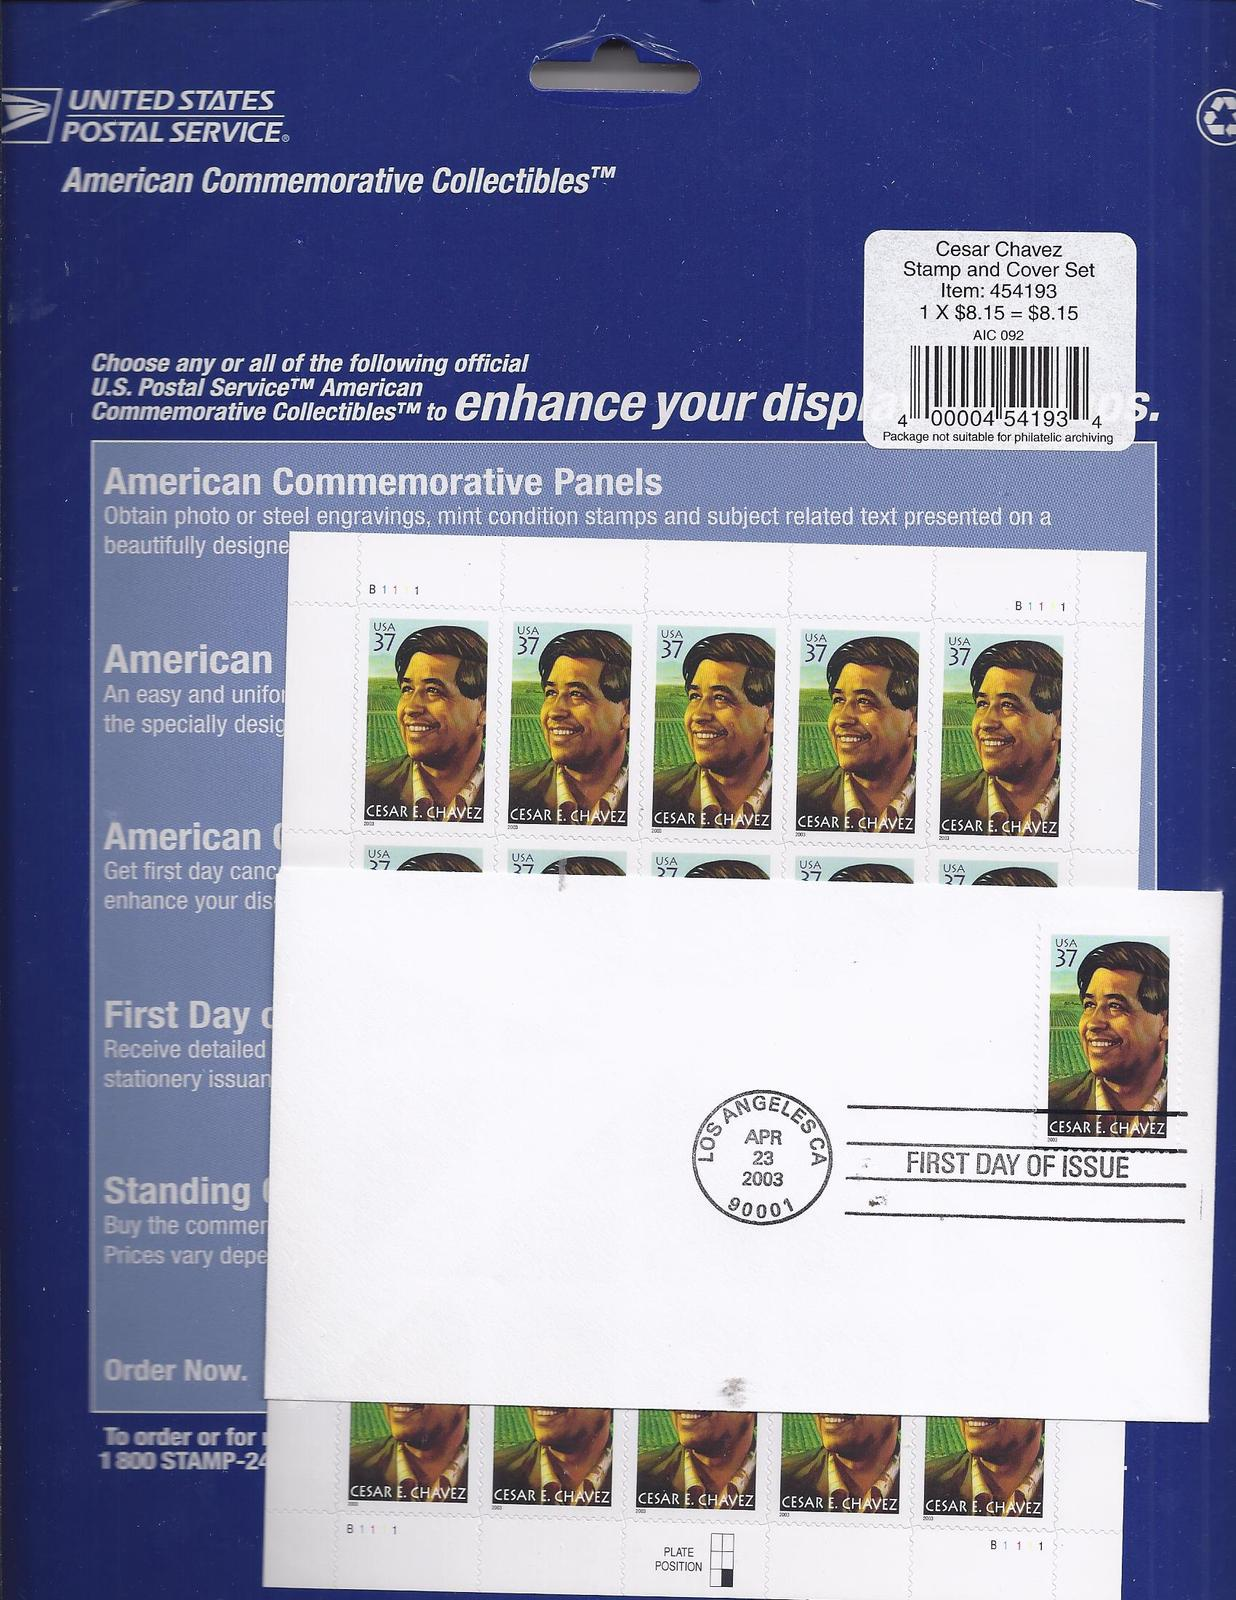 CESAR CHAVEZ Stamp & Cover Set  (USPS) .37 c Stamp Sheet 20